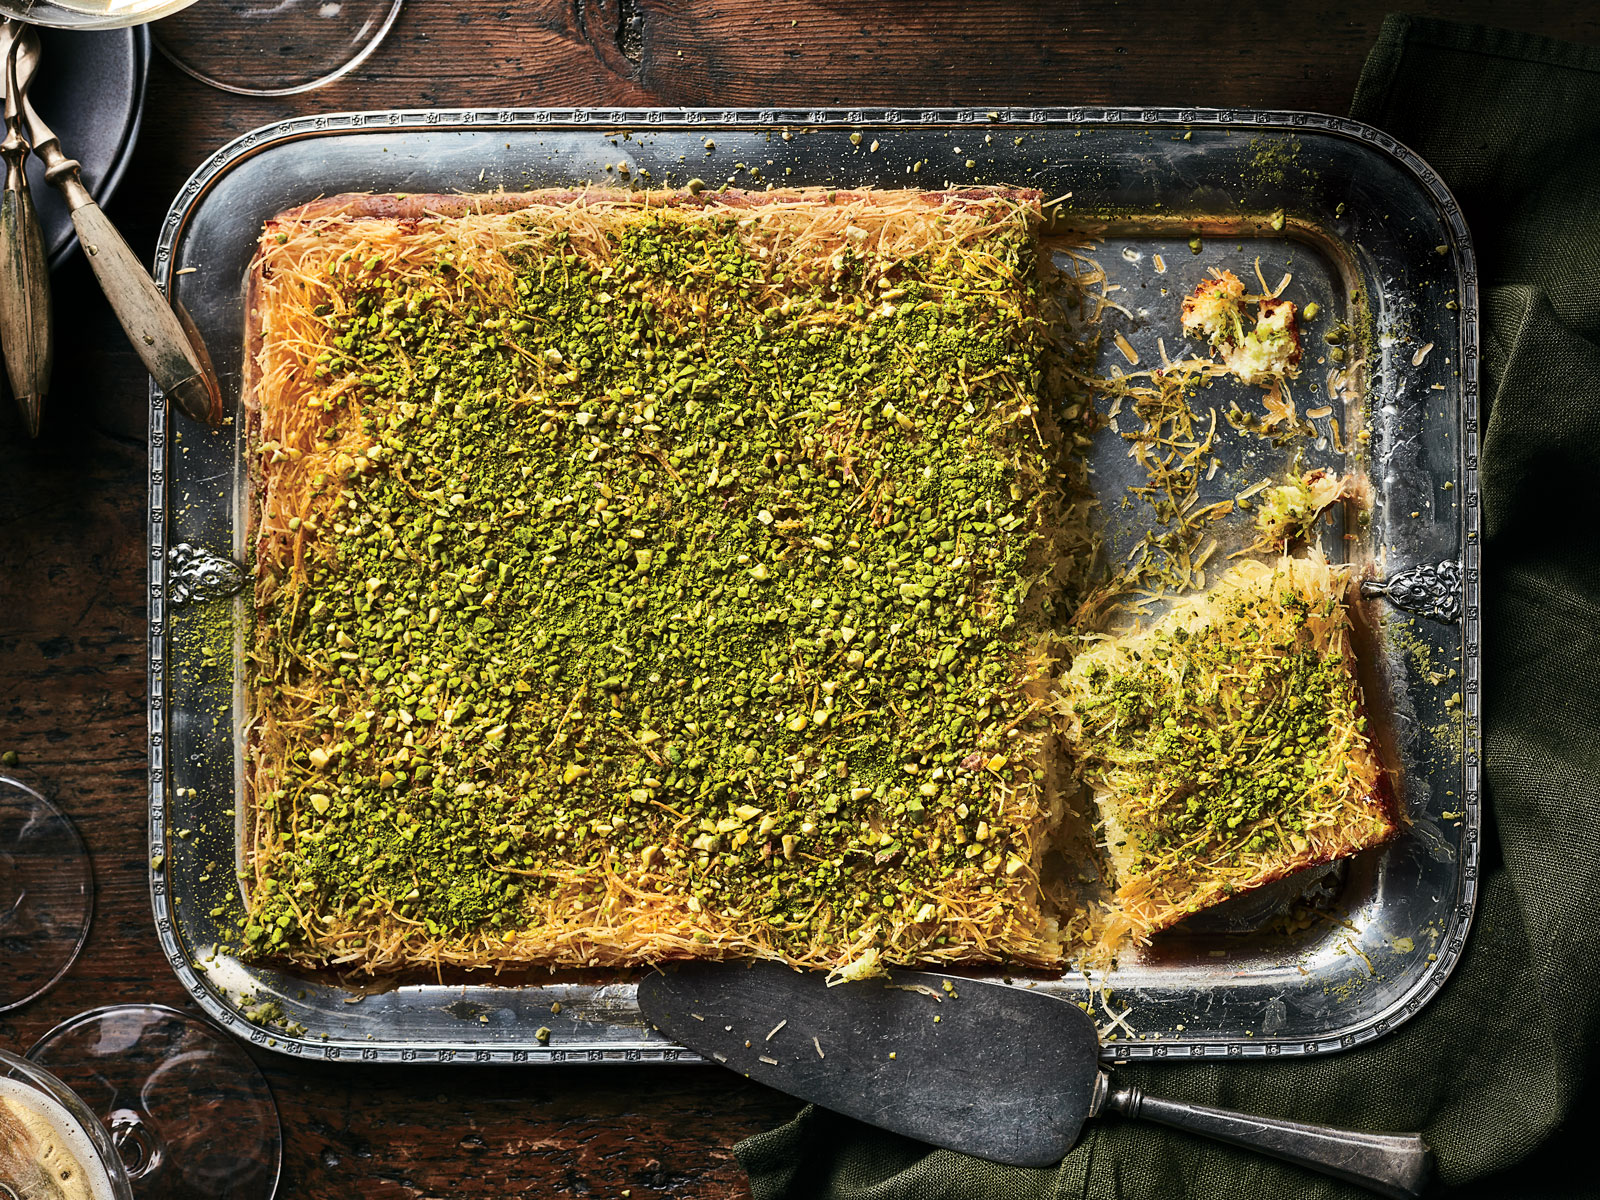 Knafeh (Shredded Phyllo-and-Cheese Pie)